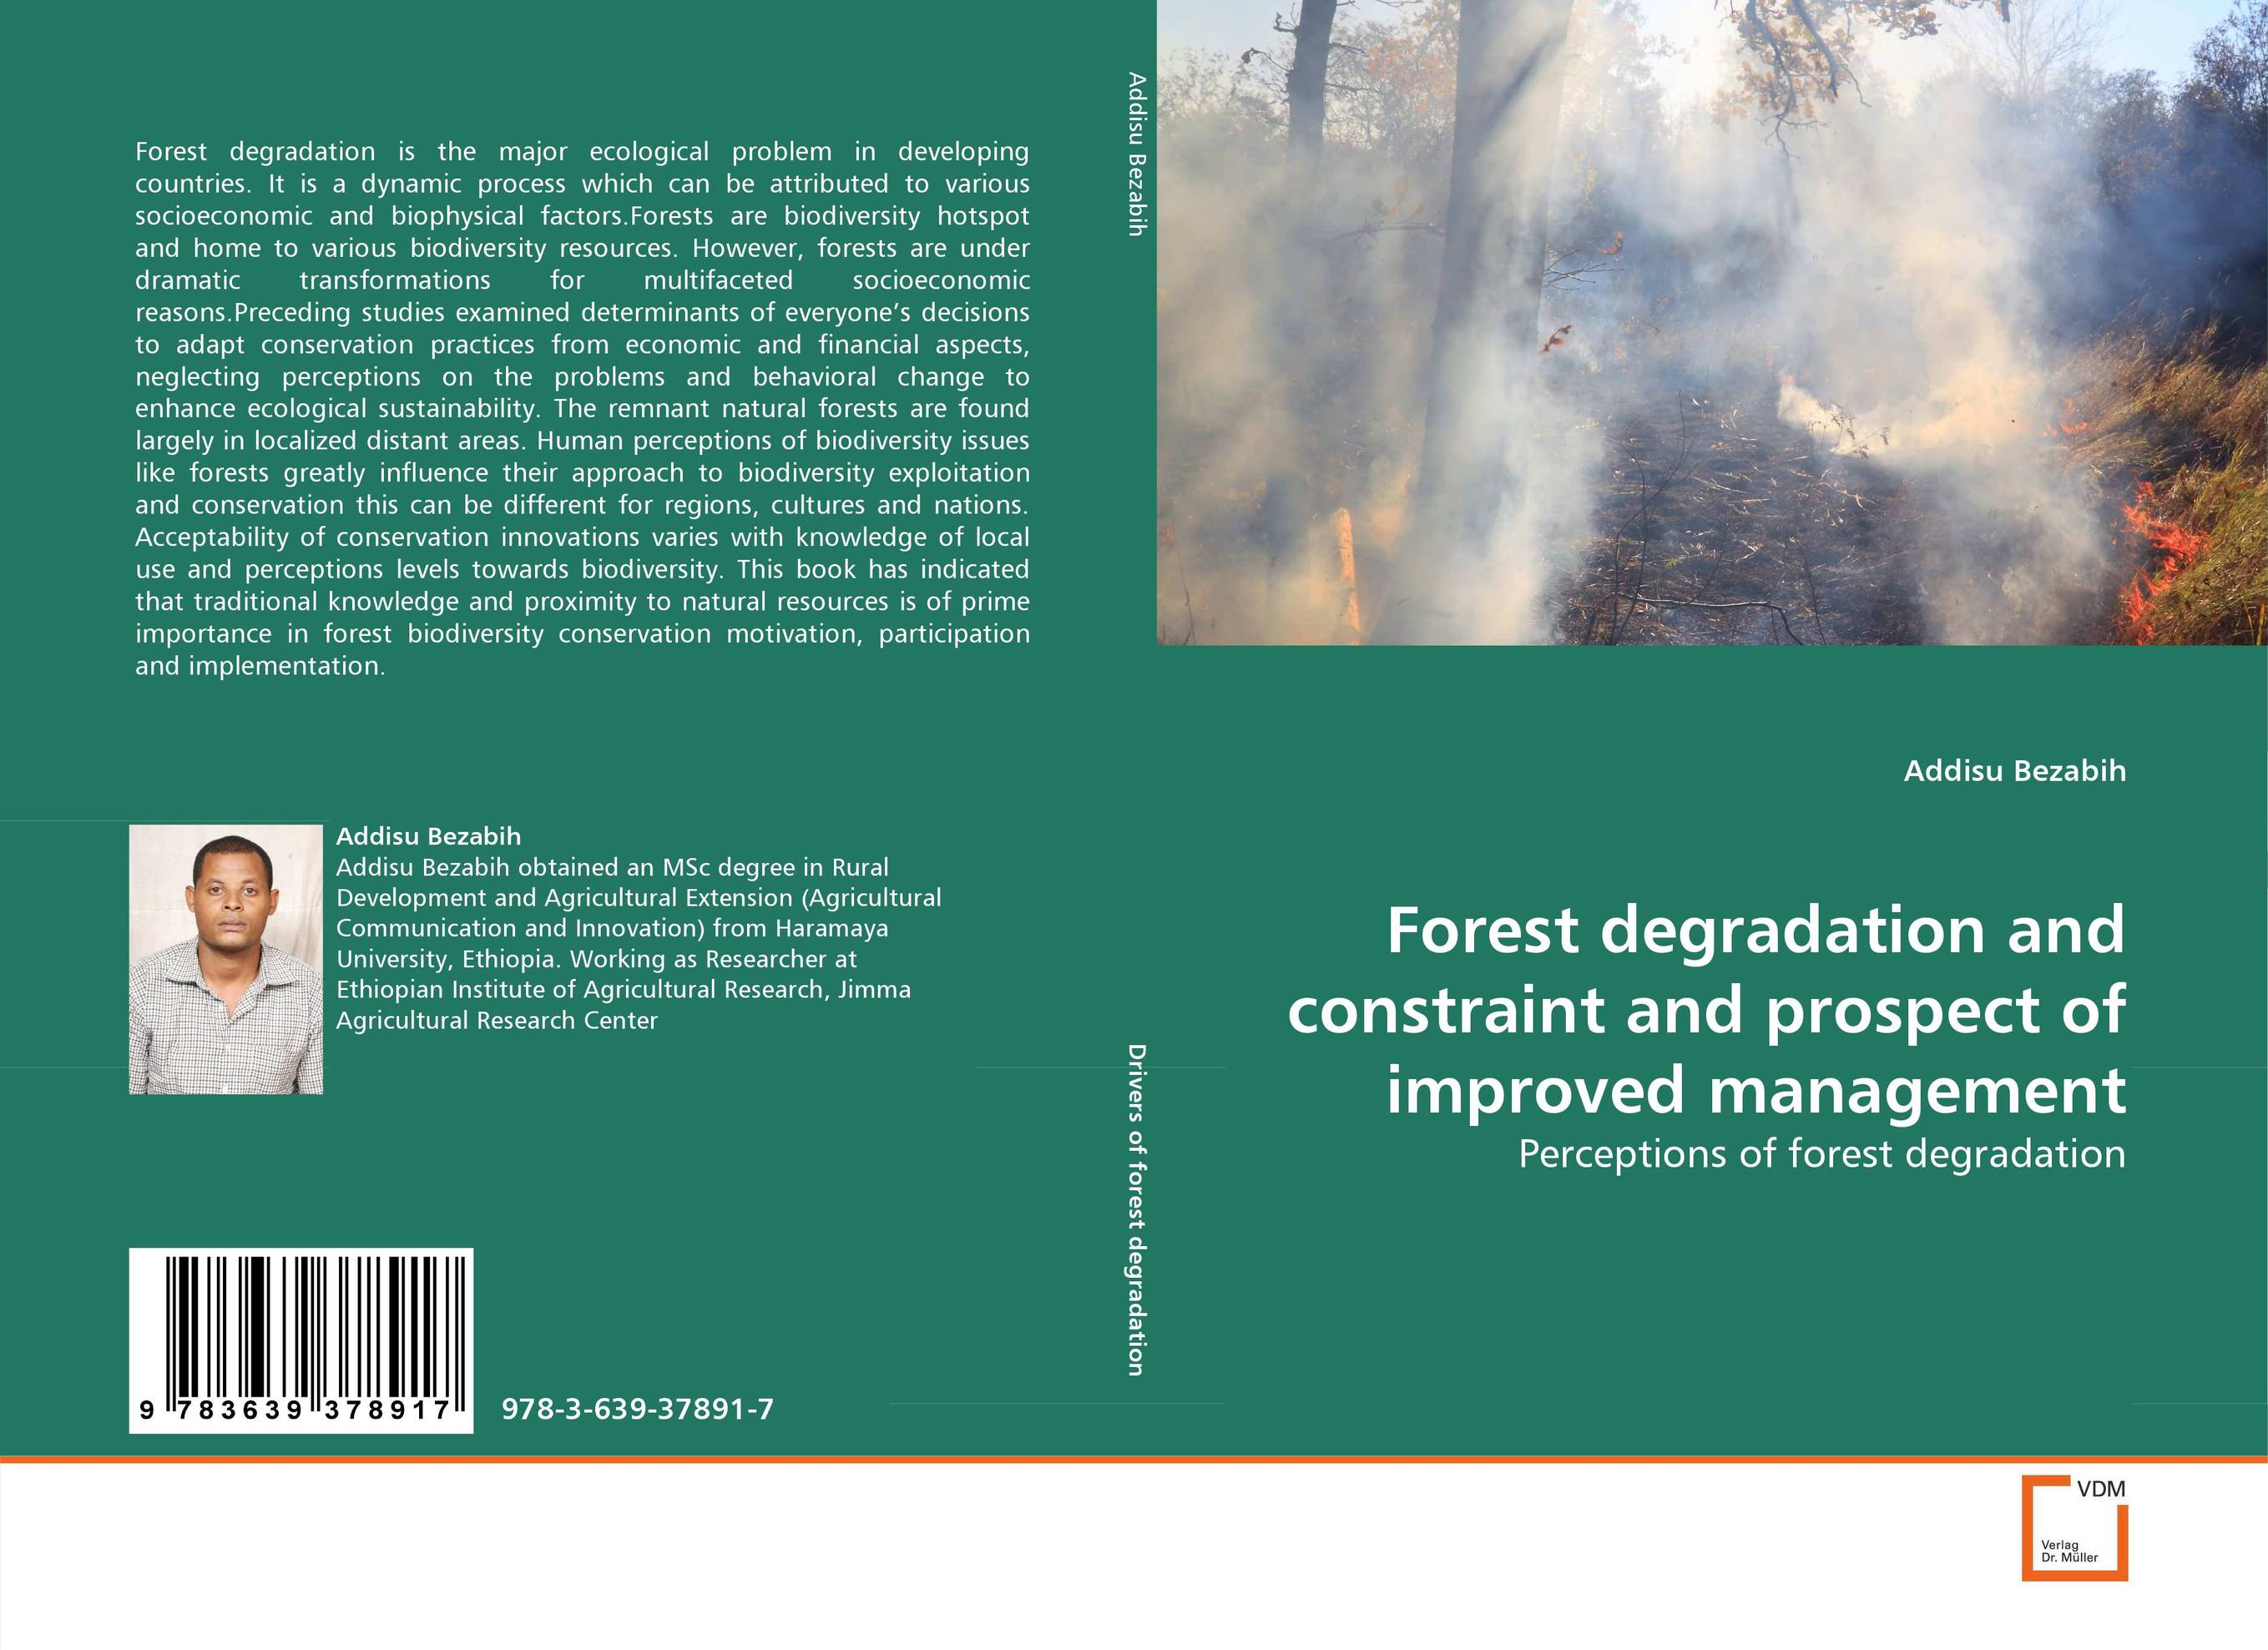 Forest degradation and constraint and prospect of improved management conflicts in forest resources usage and management